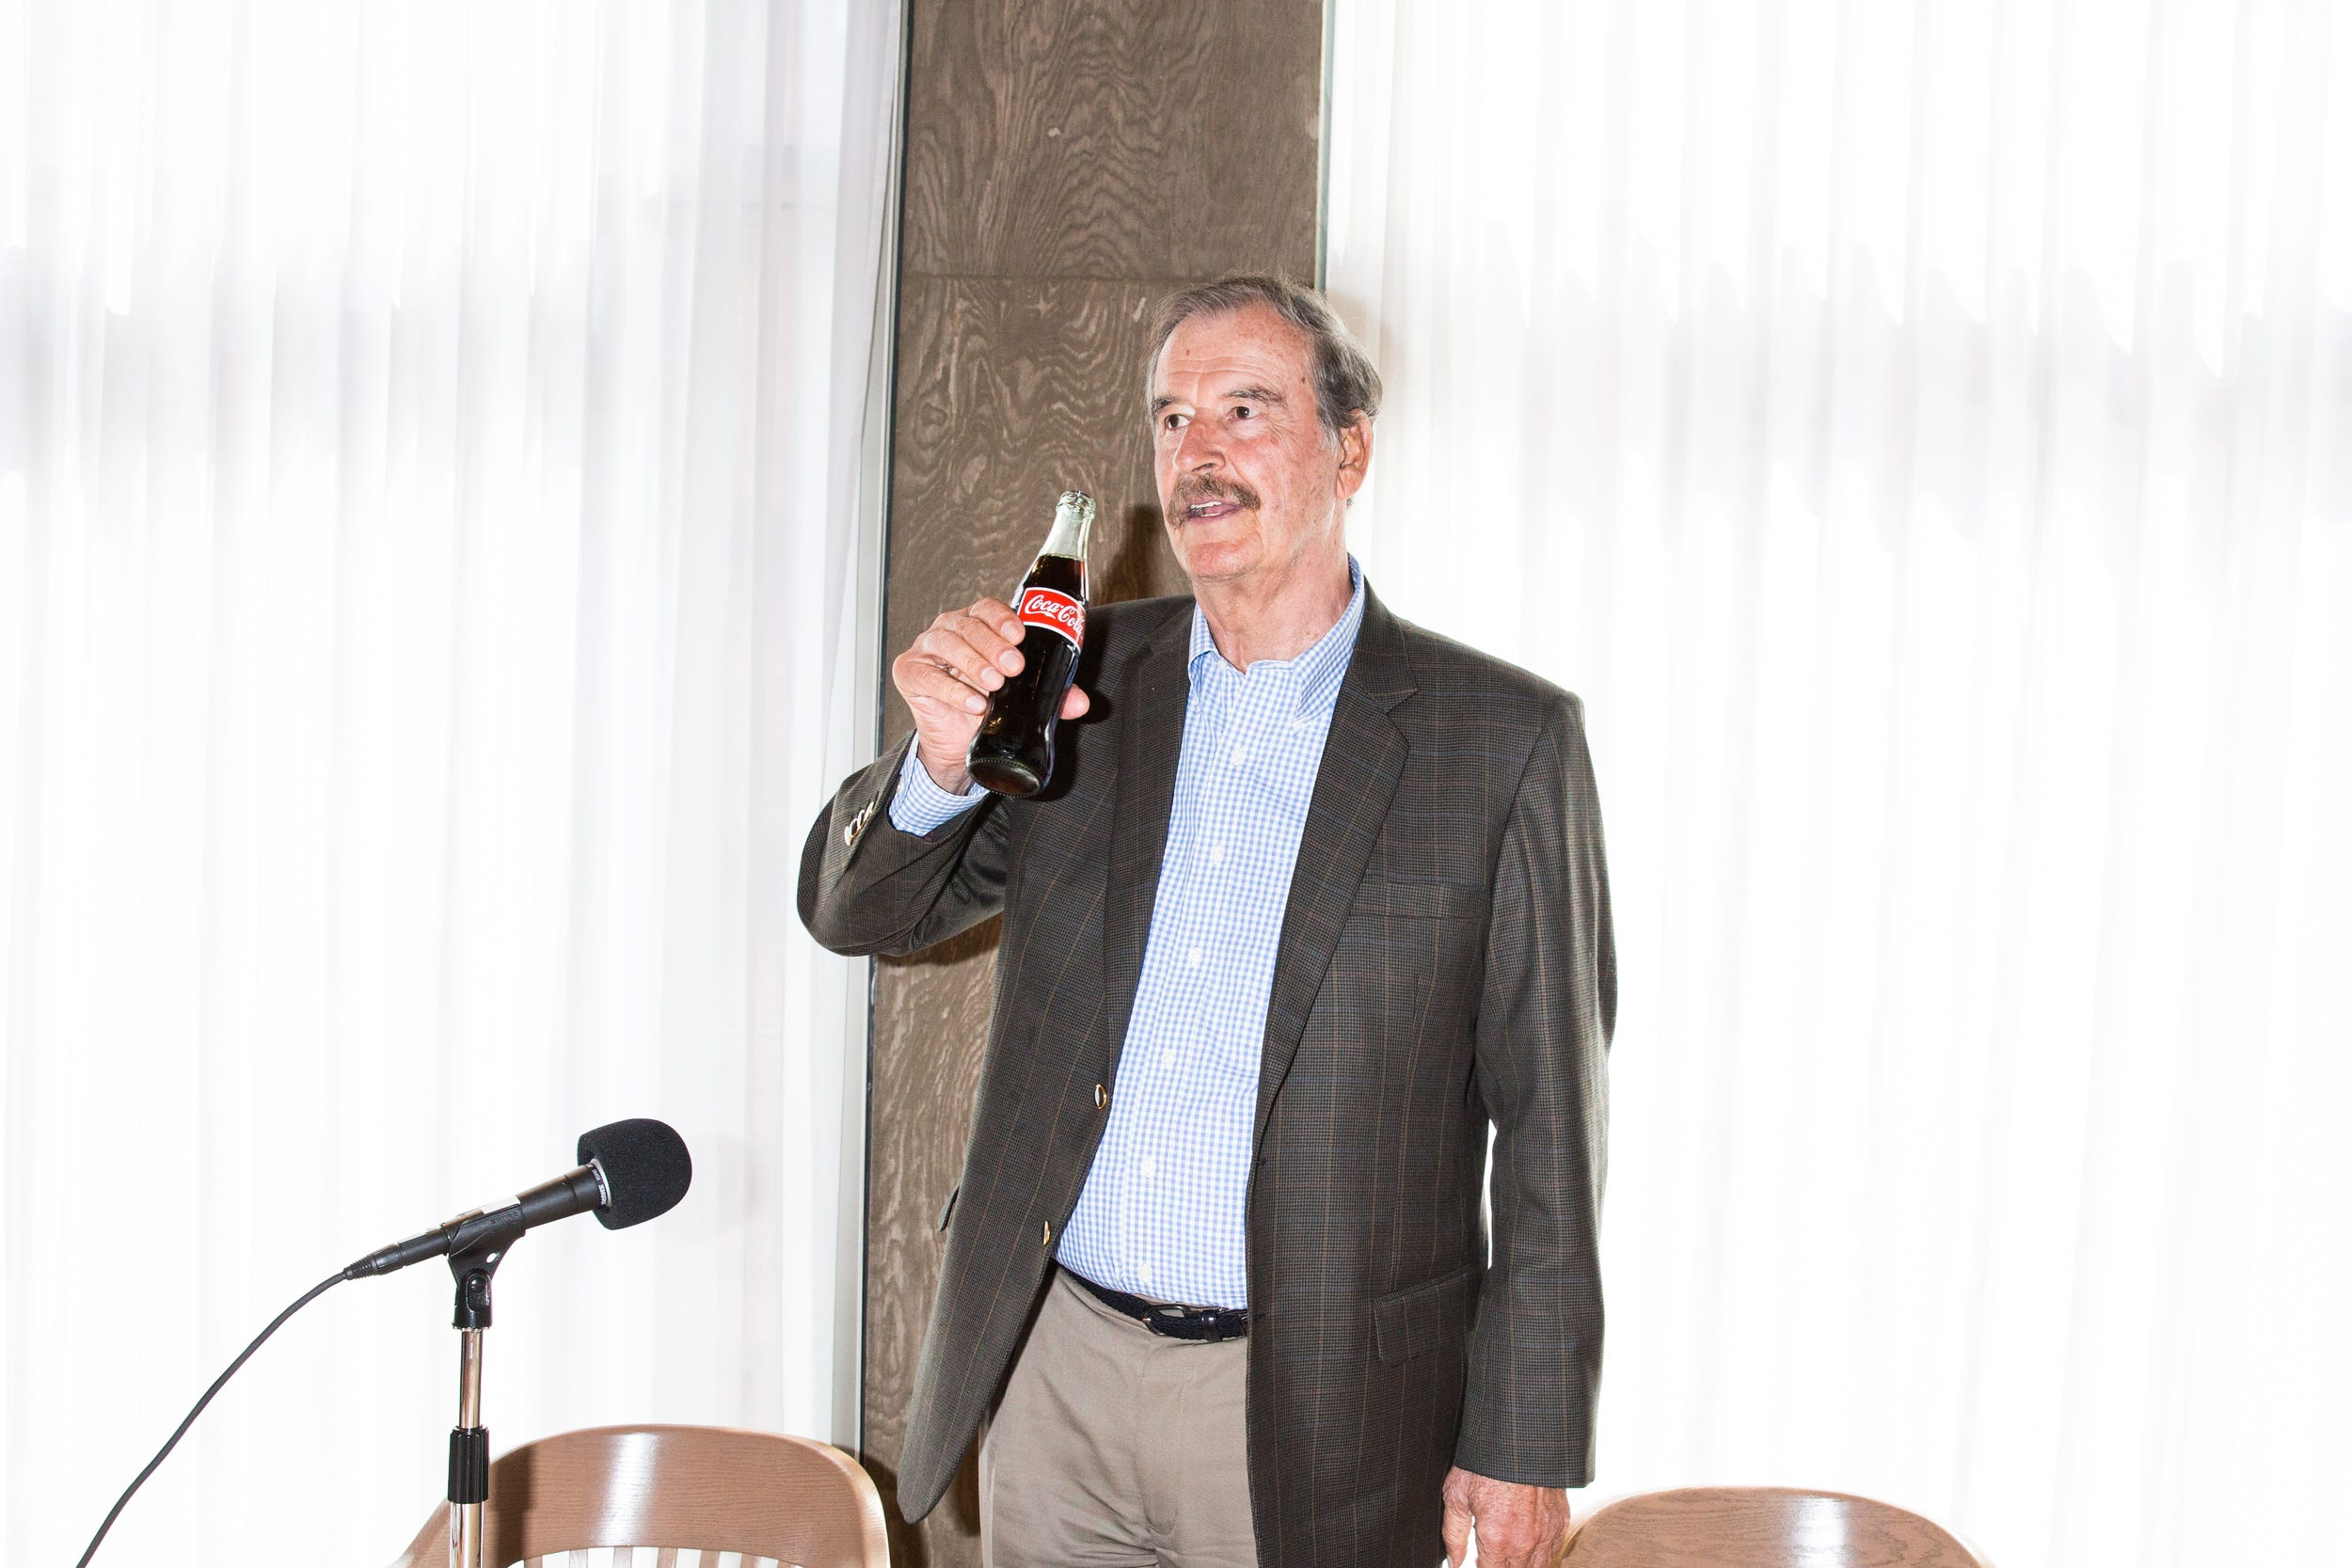 Vicente Fox. Foto: BusinessInsider.